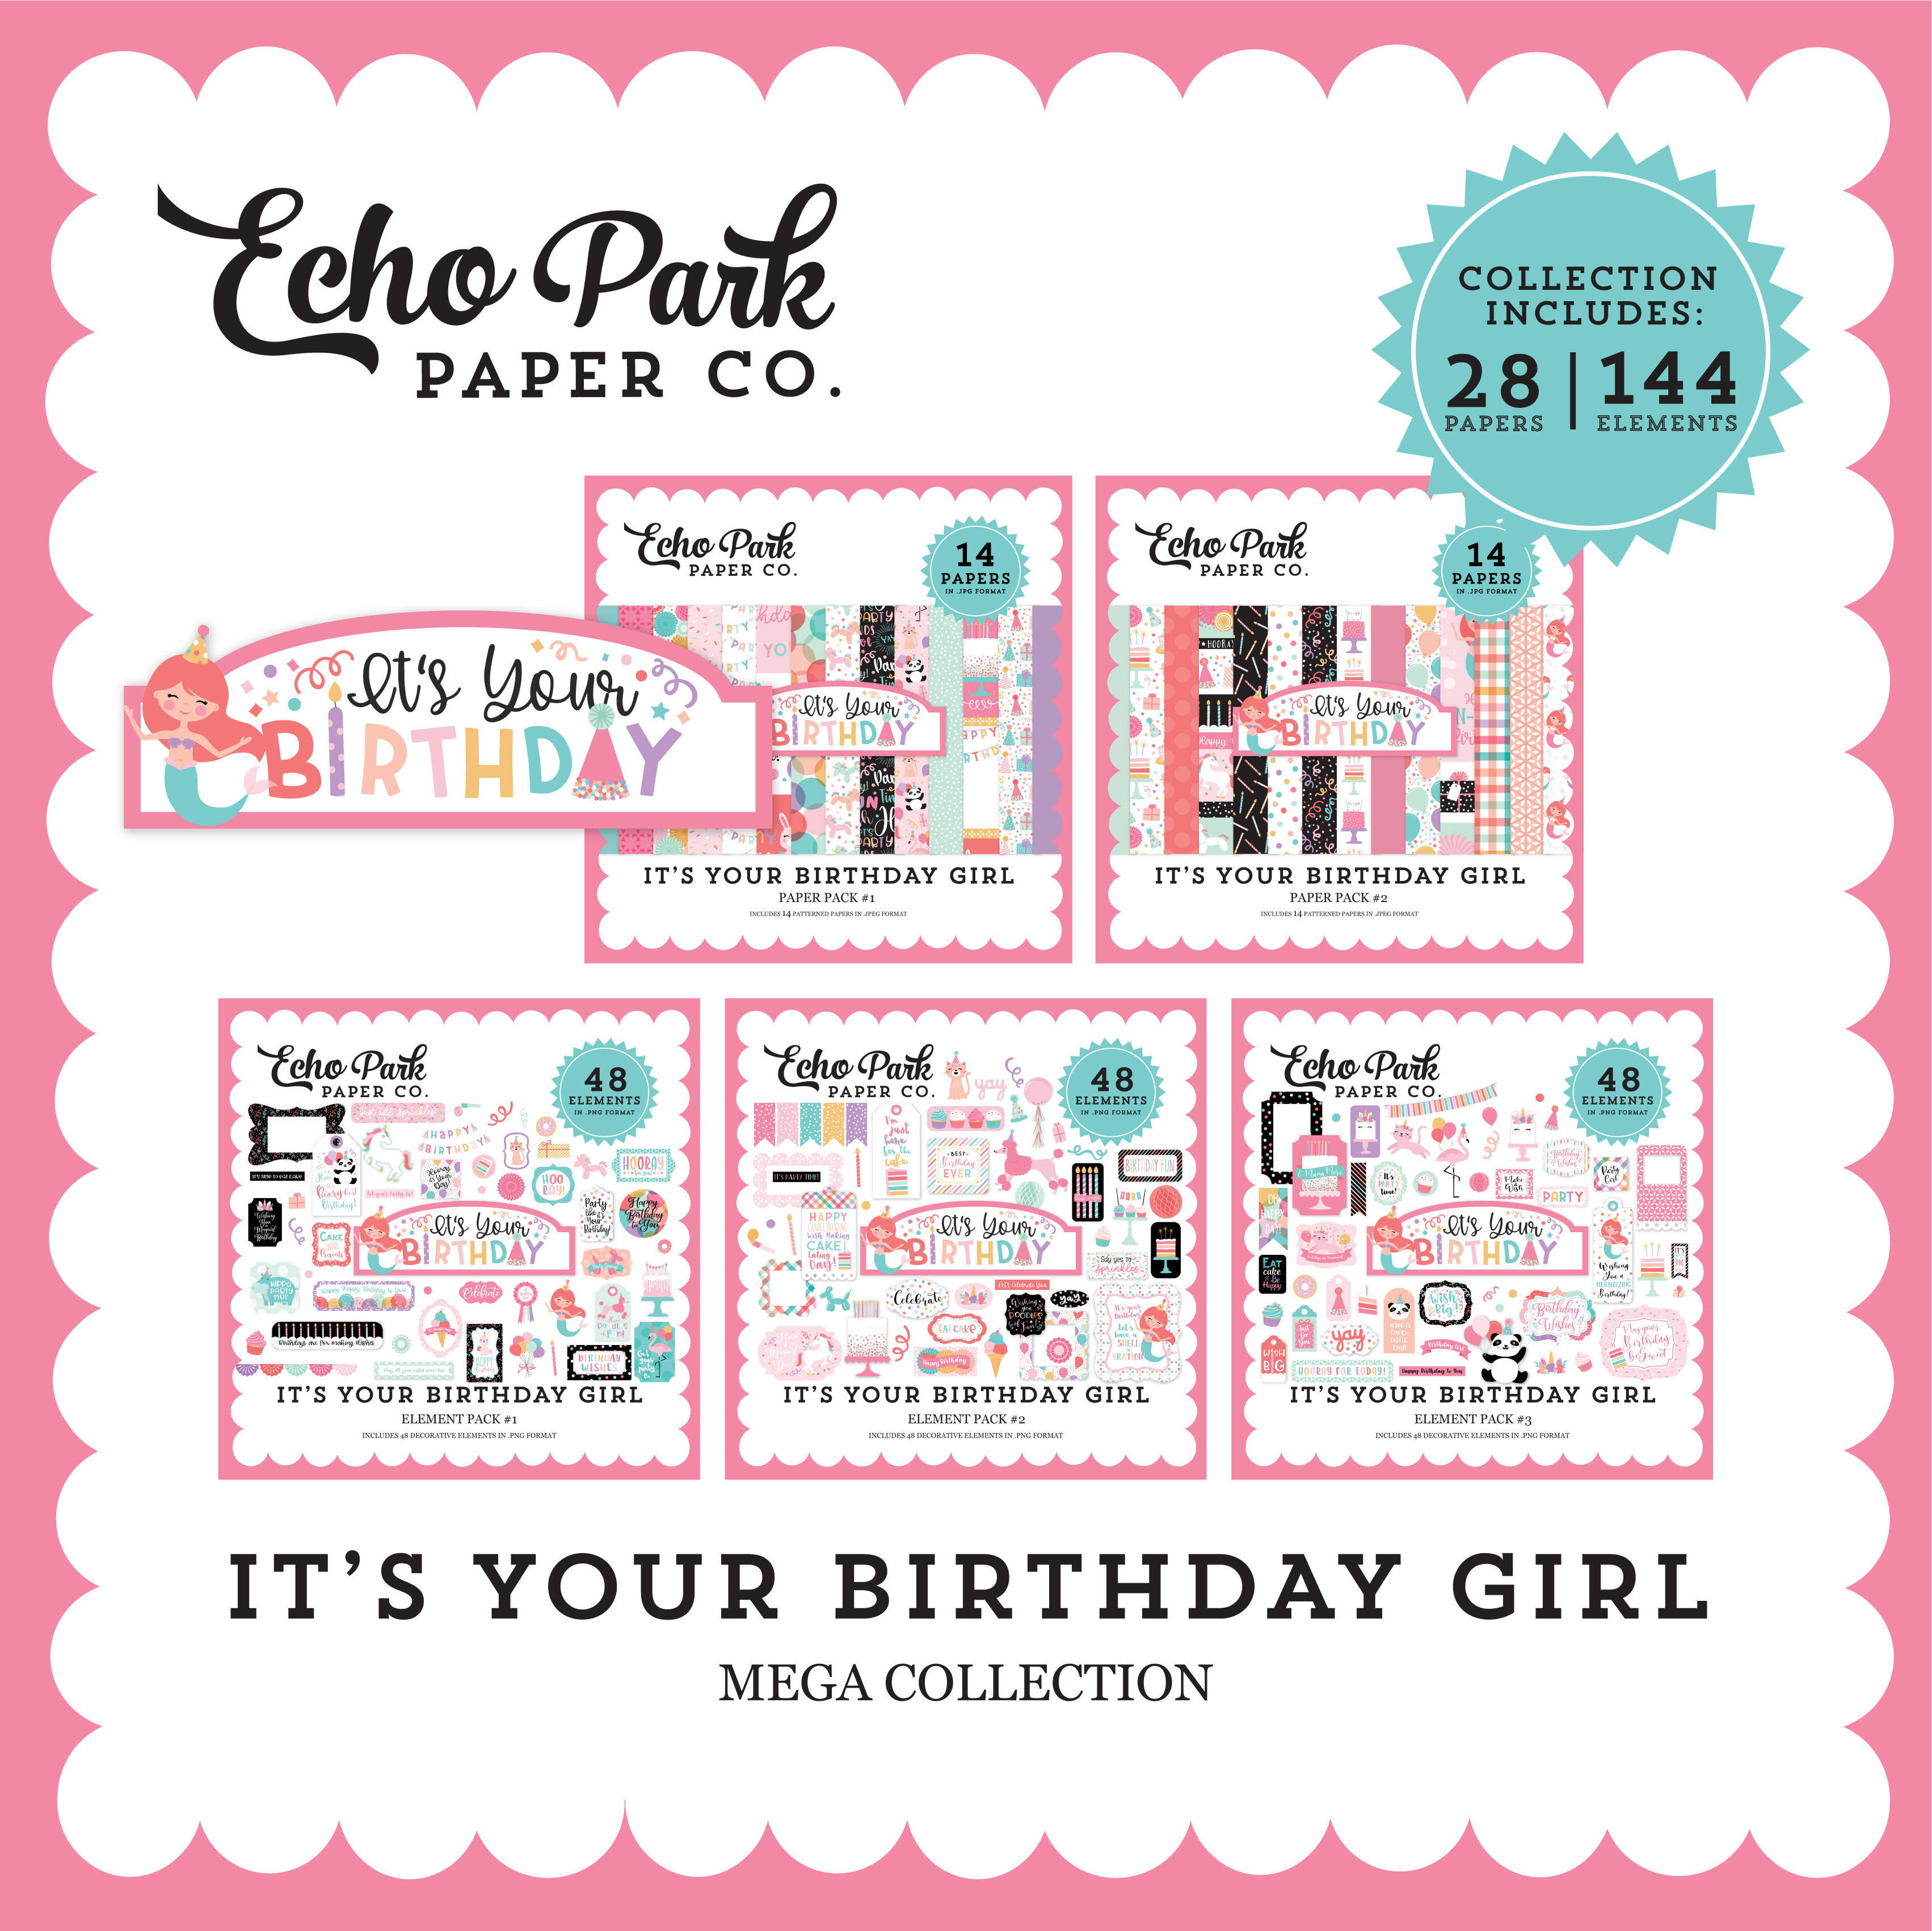 It's Your Birthday Girl Mega Collection